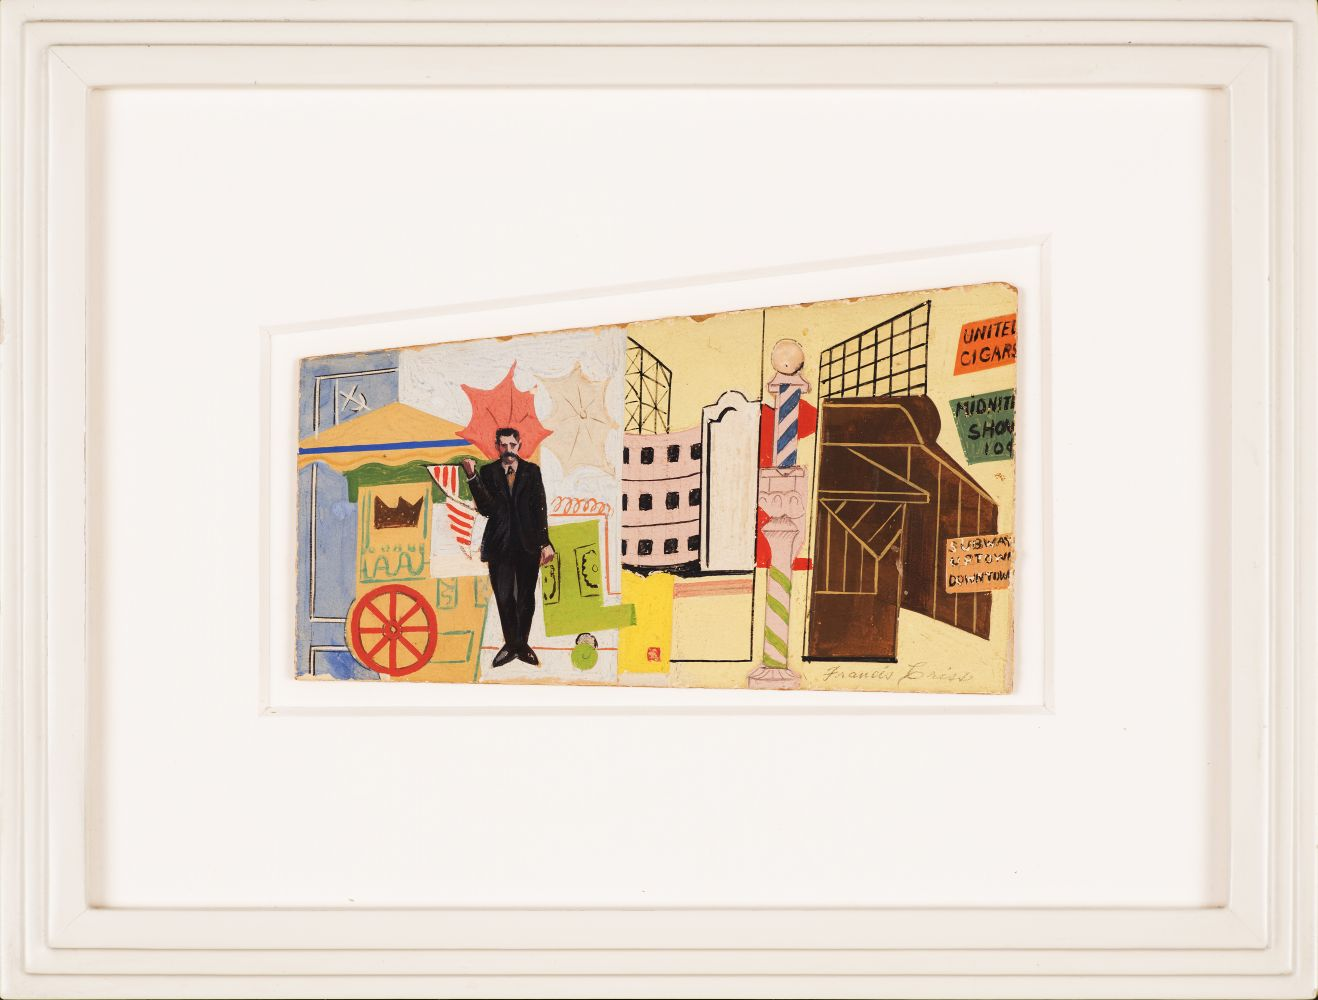 Francis Criss (1901–1973), Mural Study, c. 1930s, oil on artist board, 4 x 7 in., signed lower right: Francis Criss (framed)